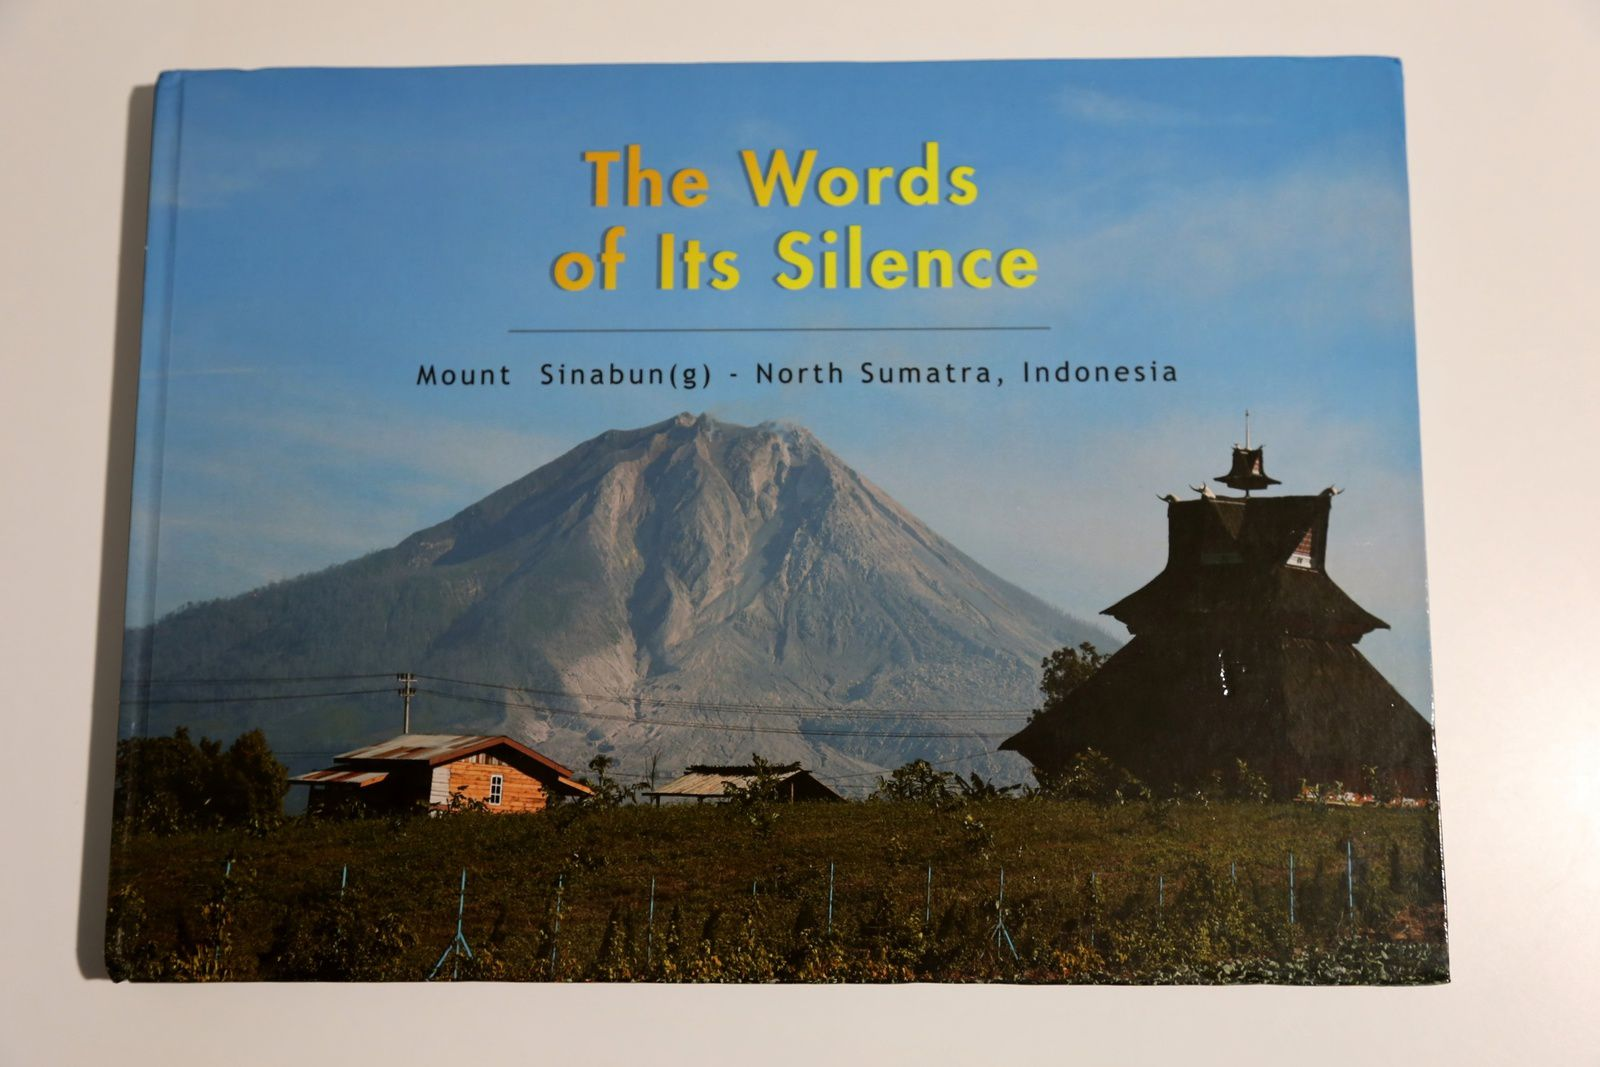 """The wordw of its Silence"" - Alumni Association of Geology ITB"